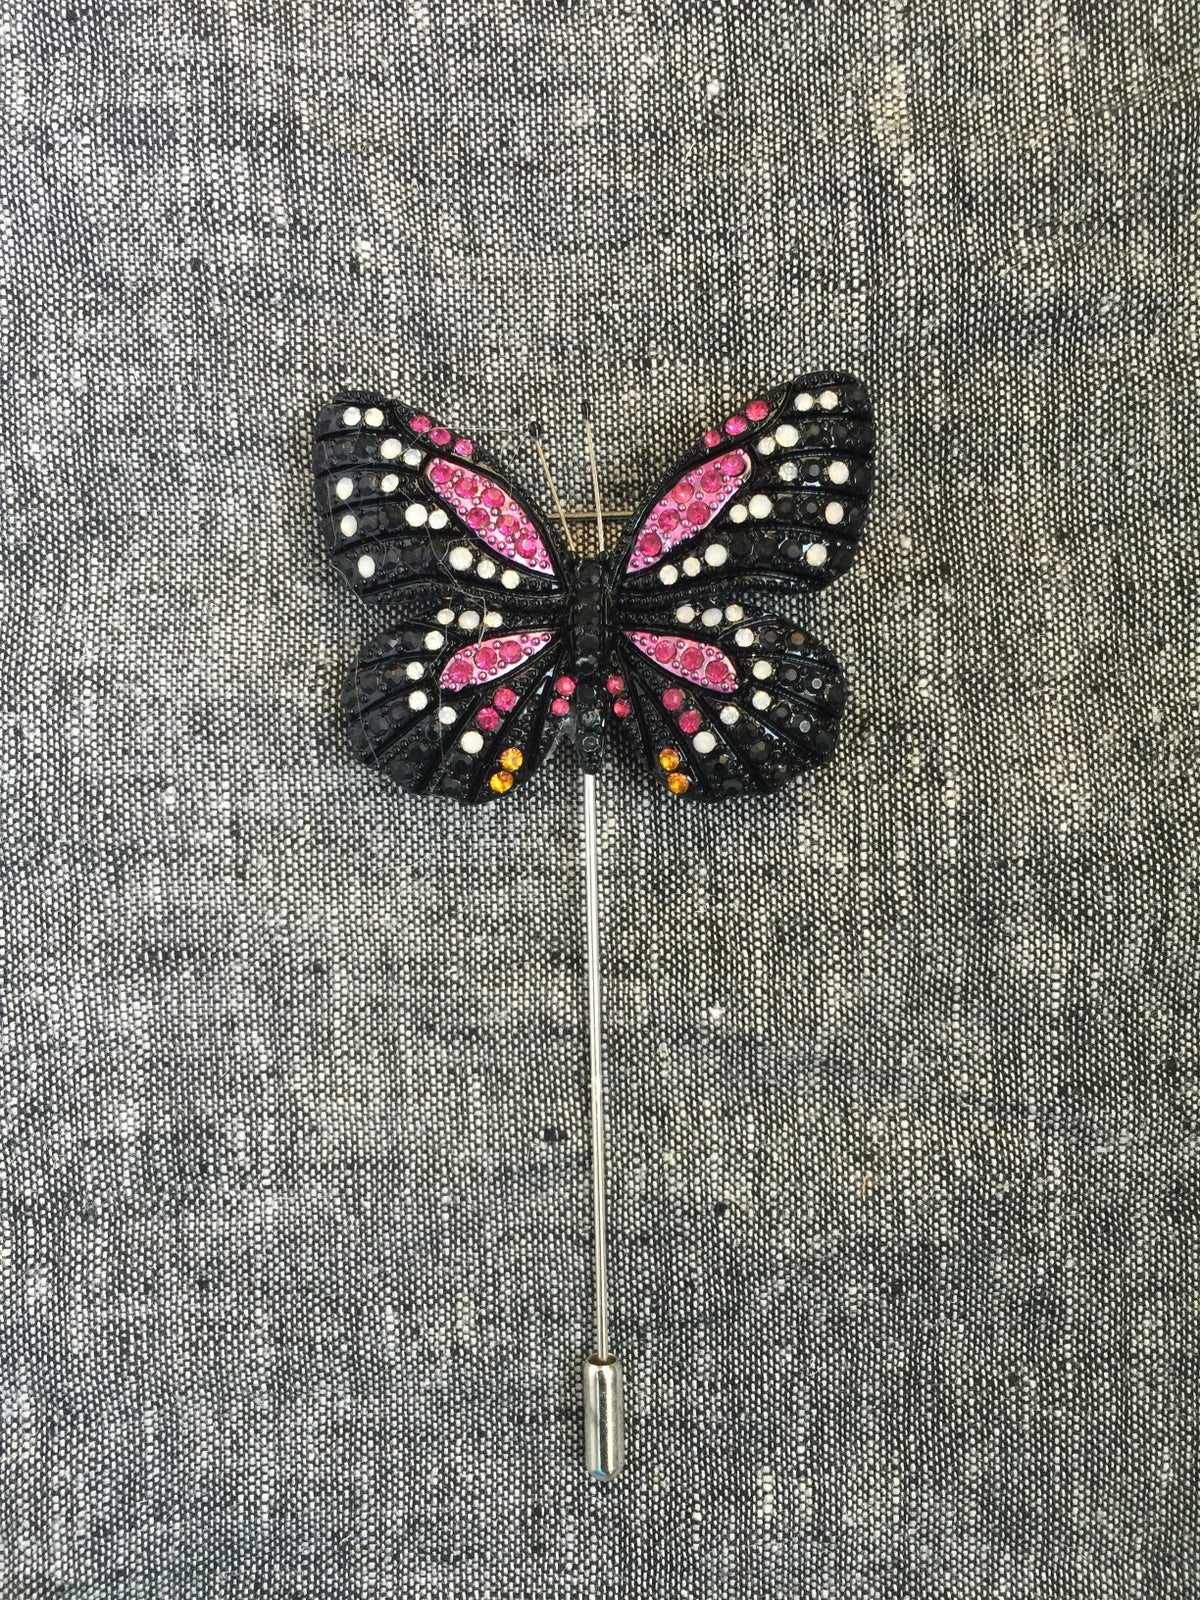 Image of Butterfly Lapel Pin (Pink, Black, White)